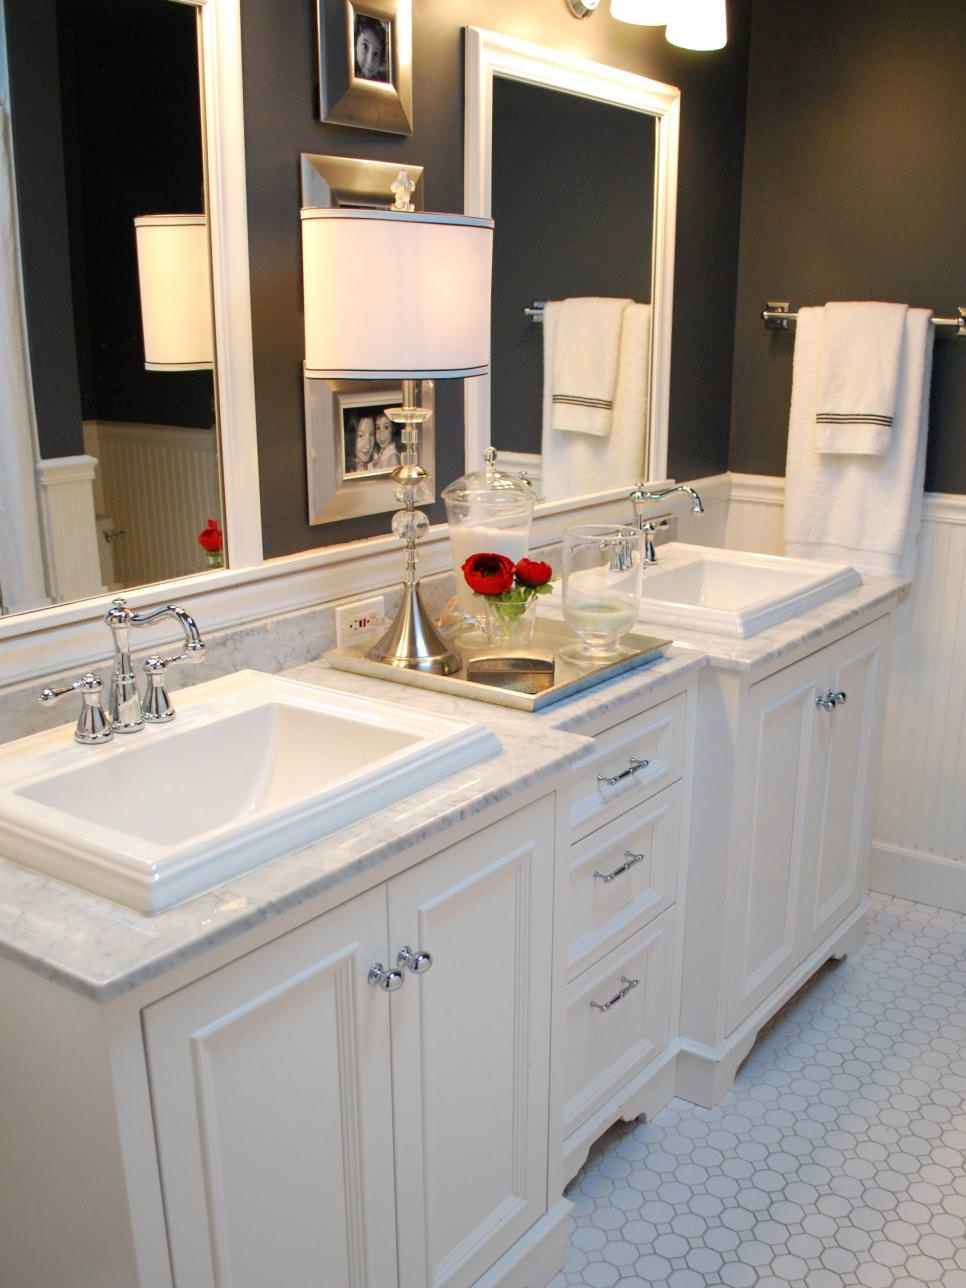 24 double bathroom vanity ideas bathroom designs ForBathroom Double Vanity Designs